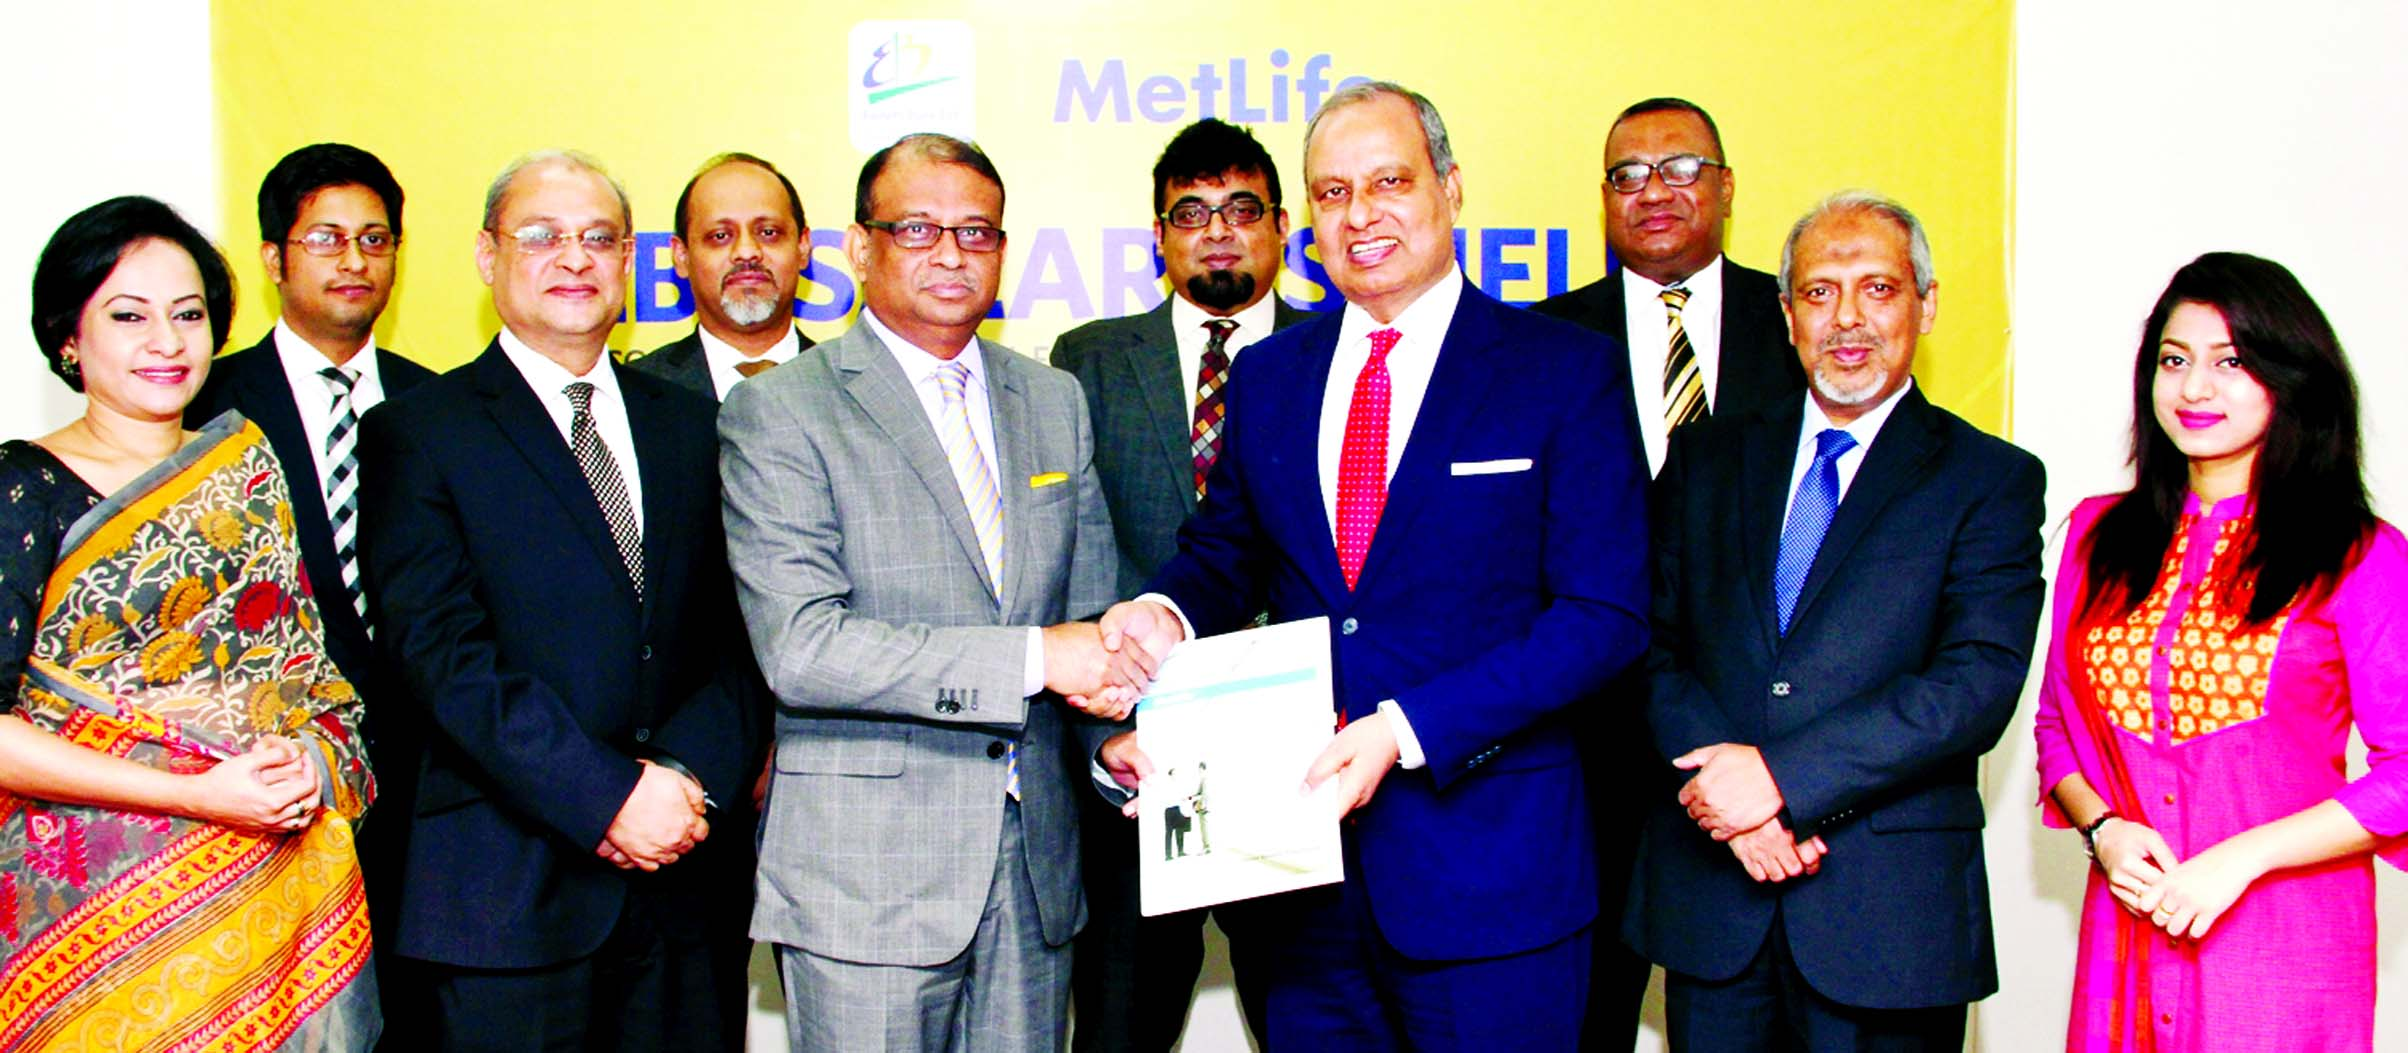 Ali Reza Iftekhar Managing Director of EBL and Md. Nurul Islam, Chairman- Bangladesh, Nepal & Myanmar of Metlife, exchanging documents after signing an agreement titled